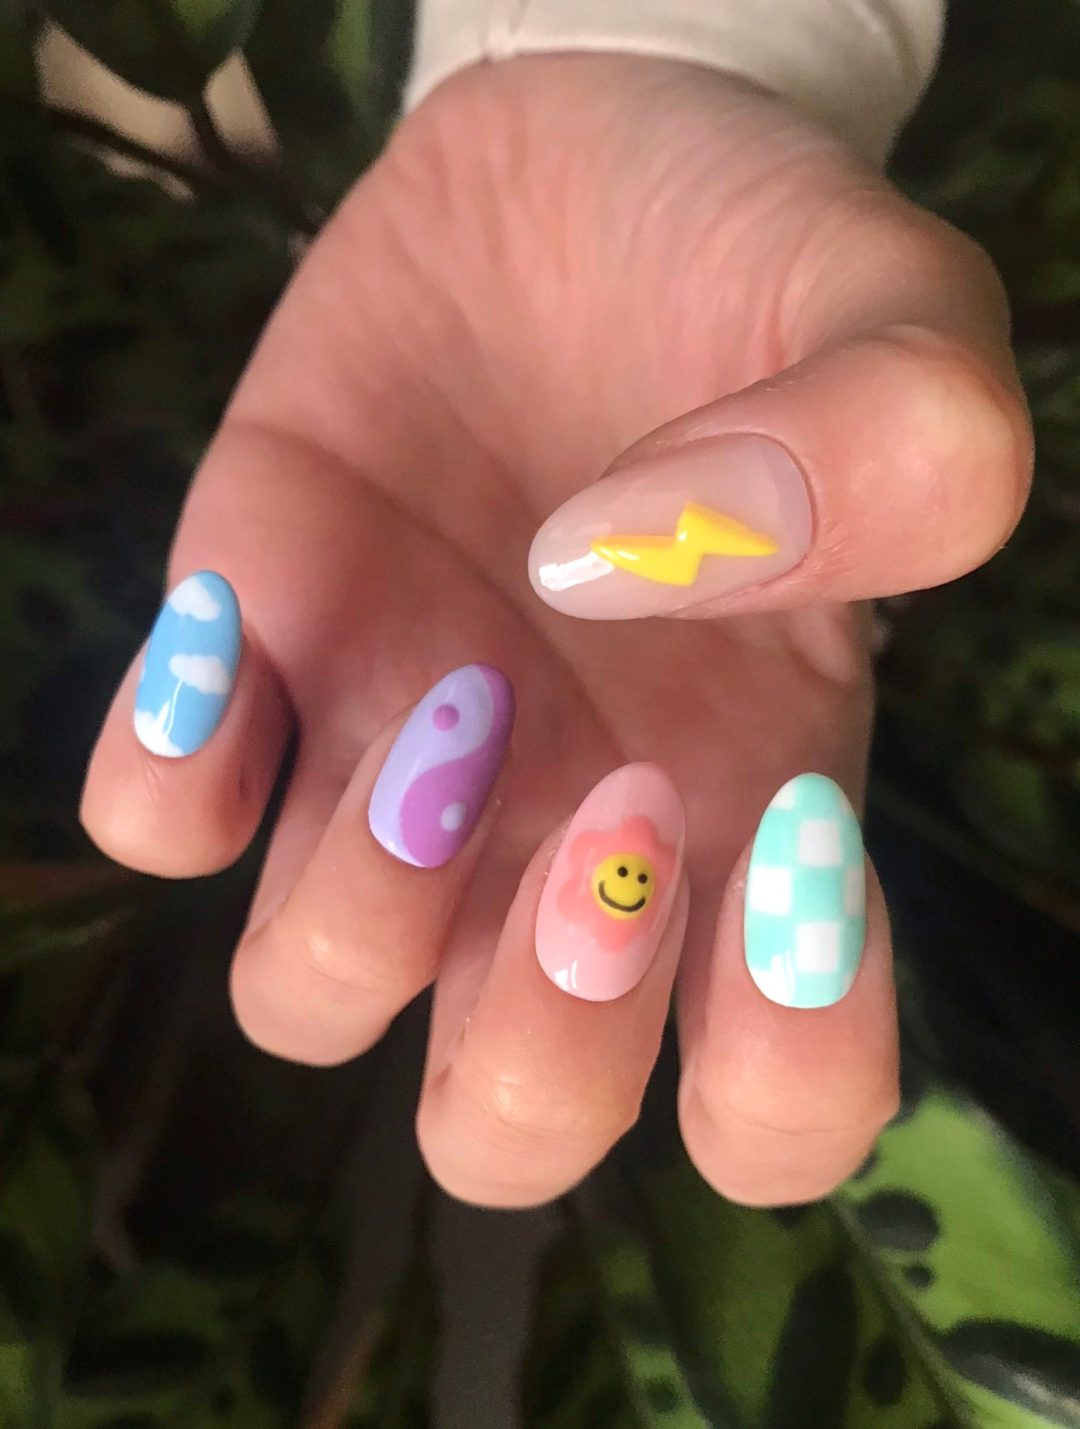 Pastel mix and match nails with emojis